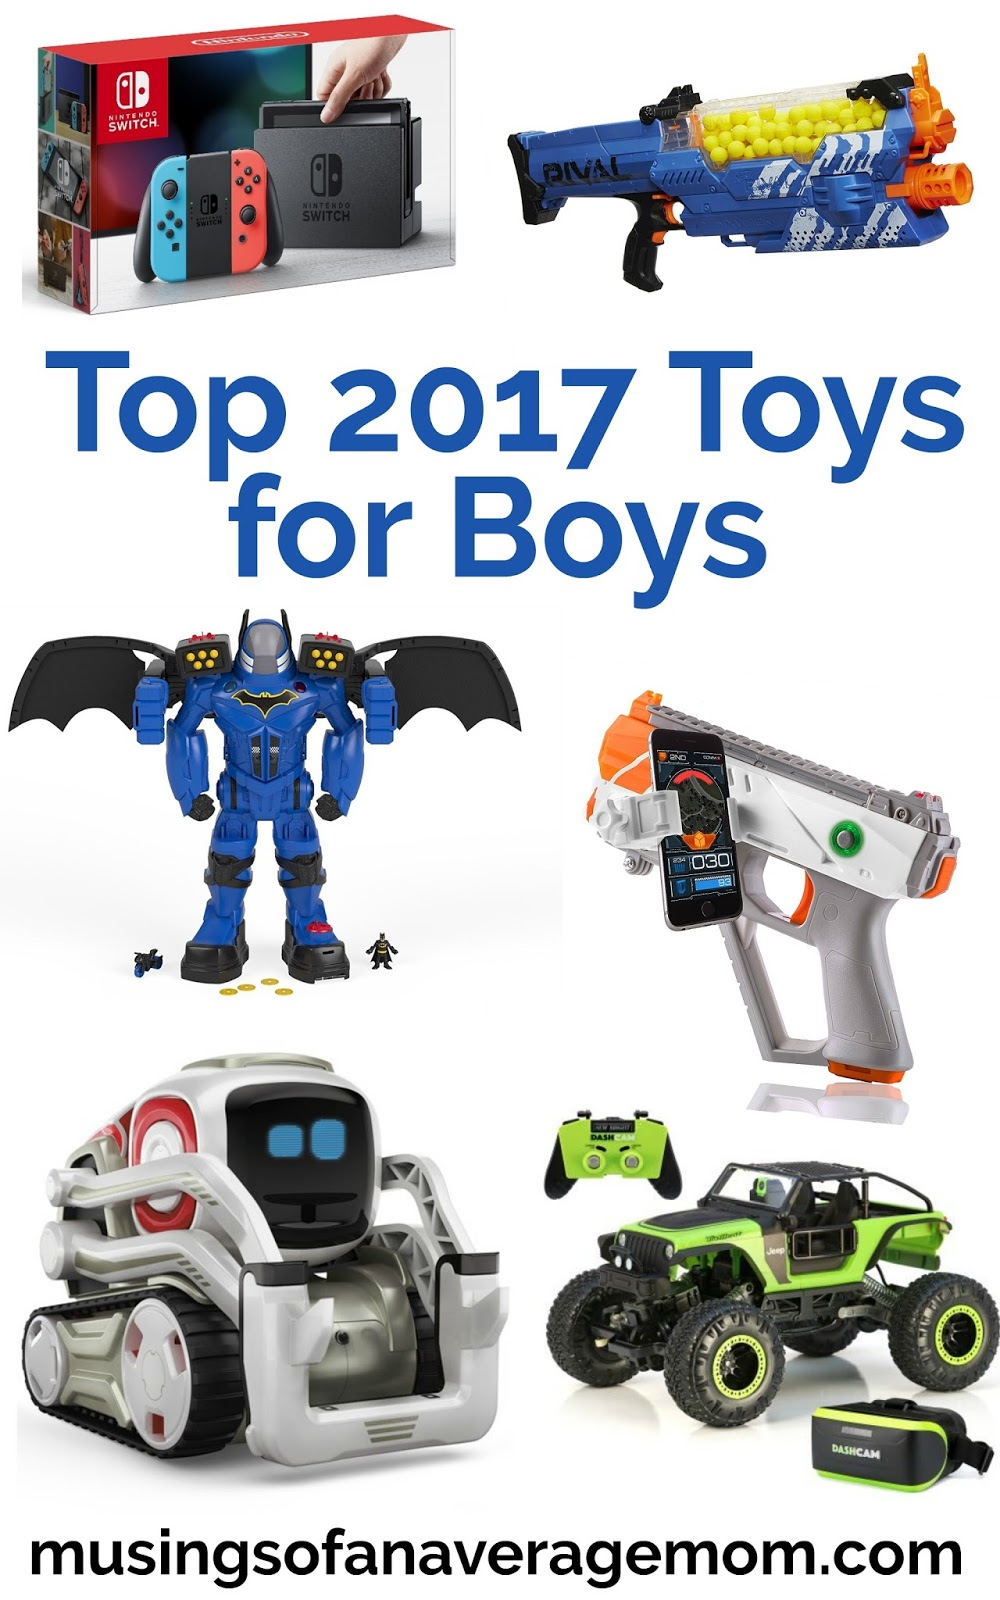 Cool Toys For Boys 2017 : Musings of an average mom top toys for boys